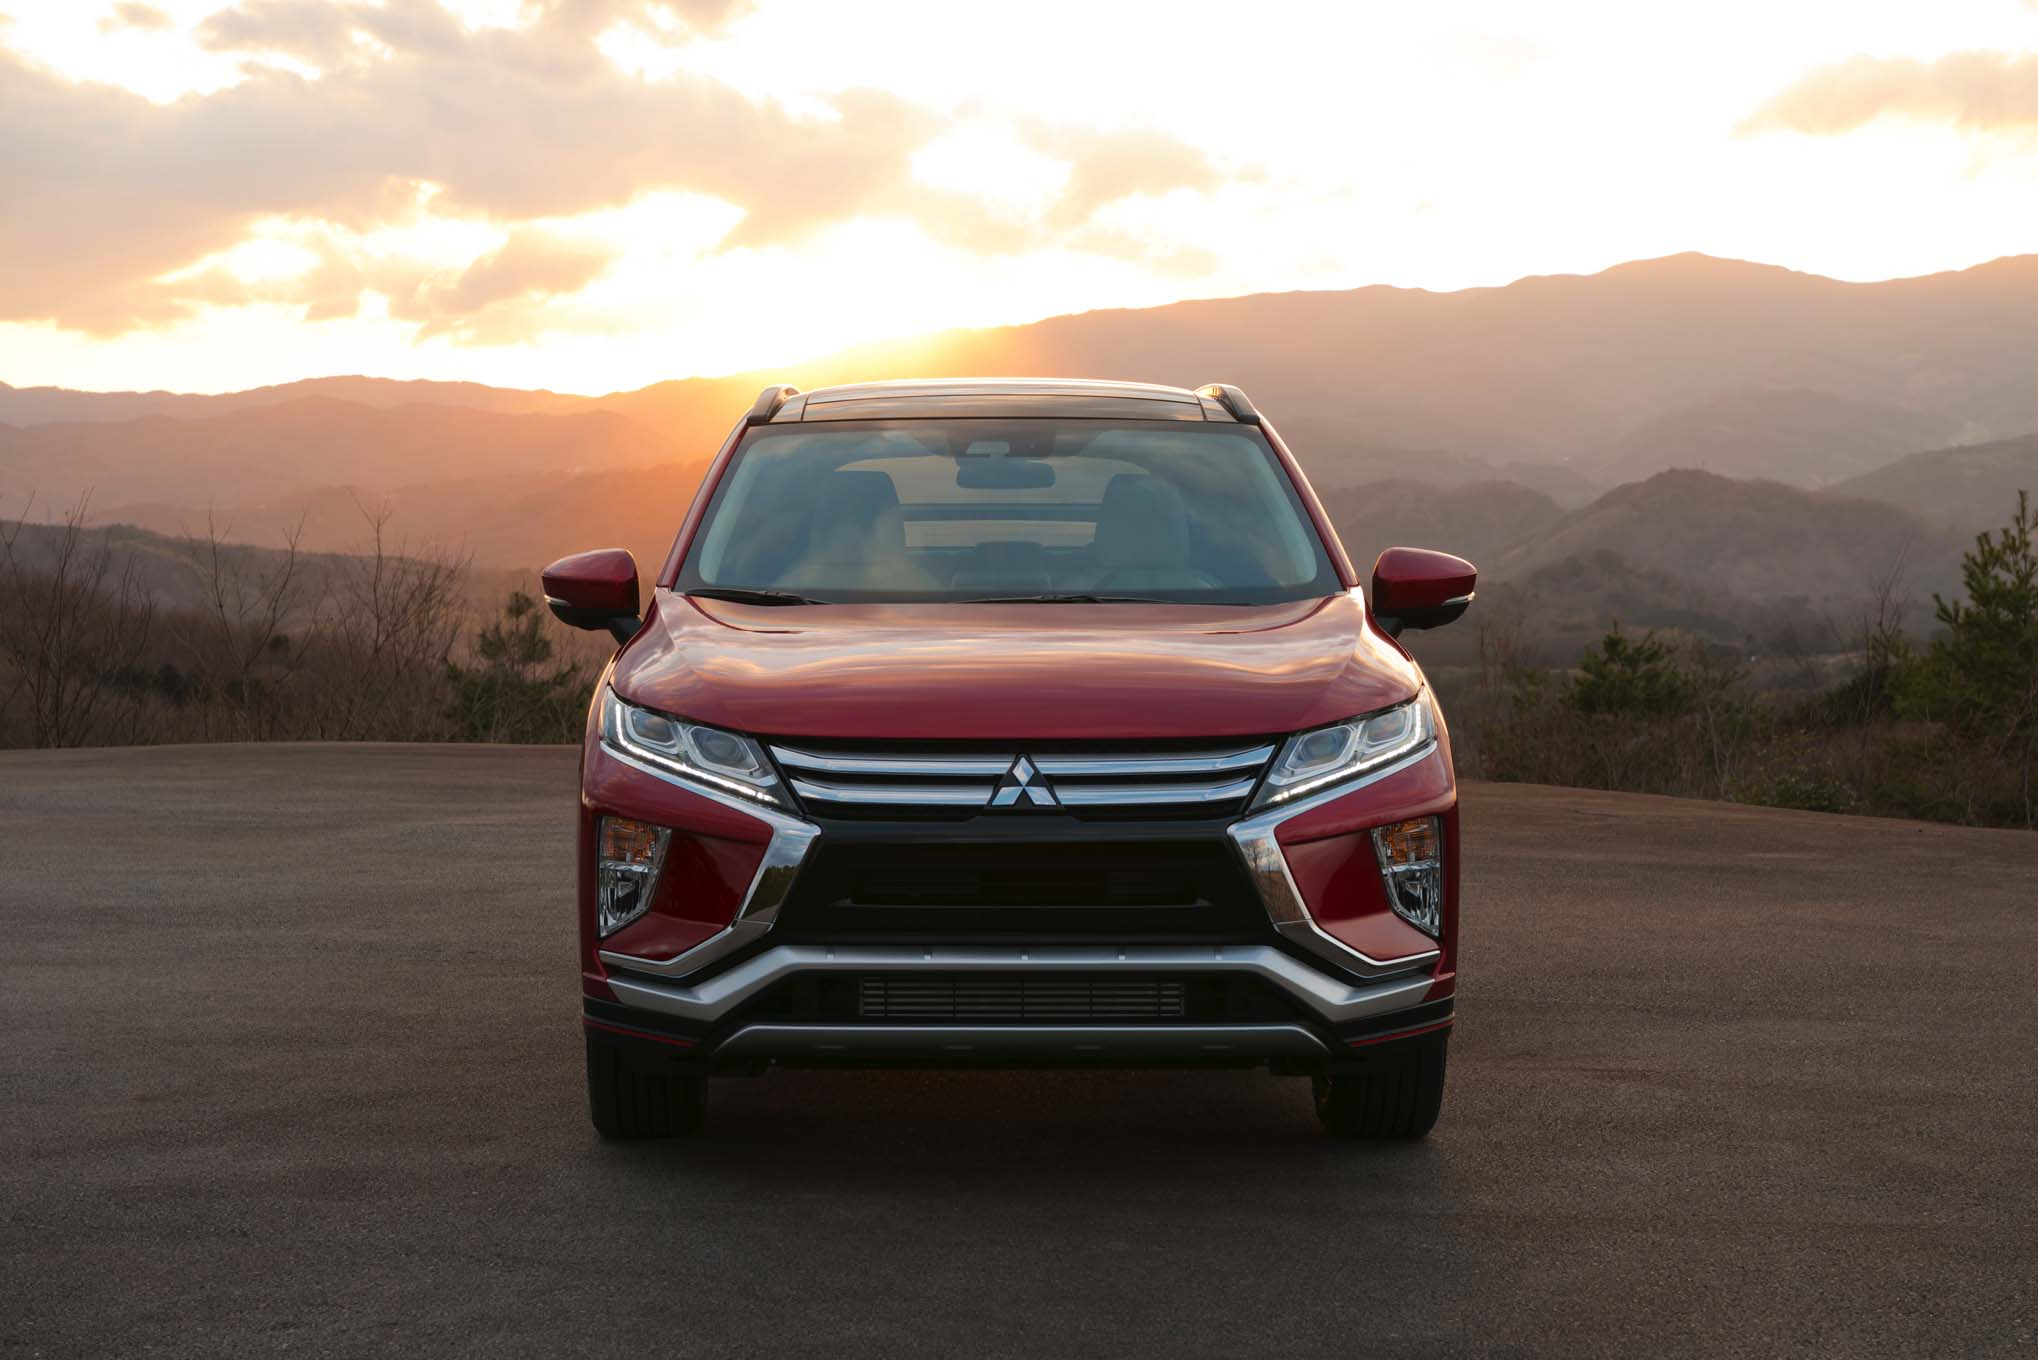 2018 Mitsubishi Eclipse Cross Front End 04 1